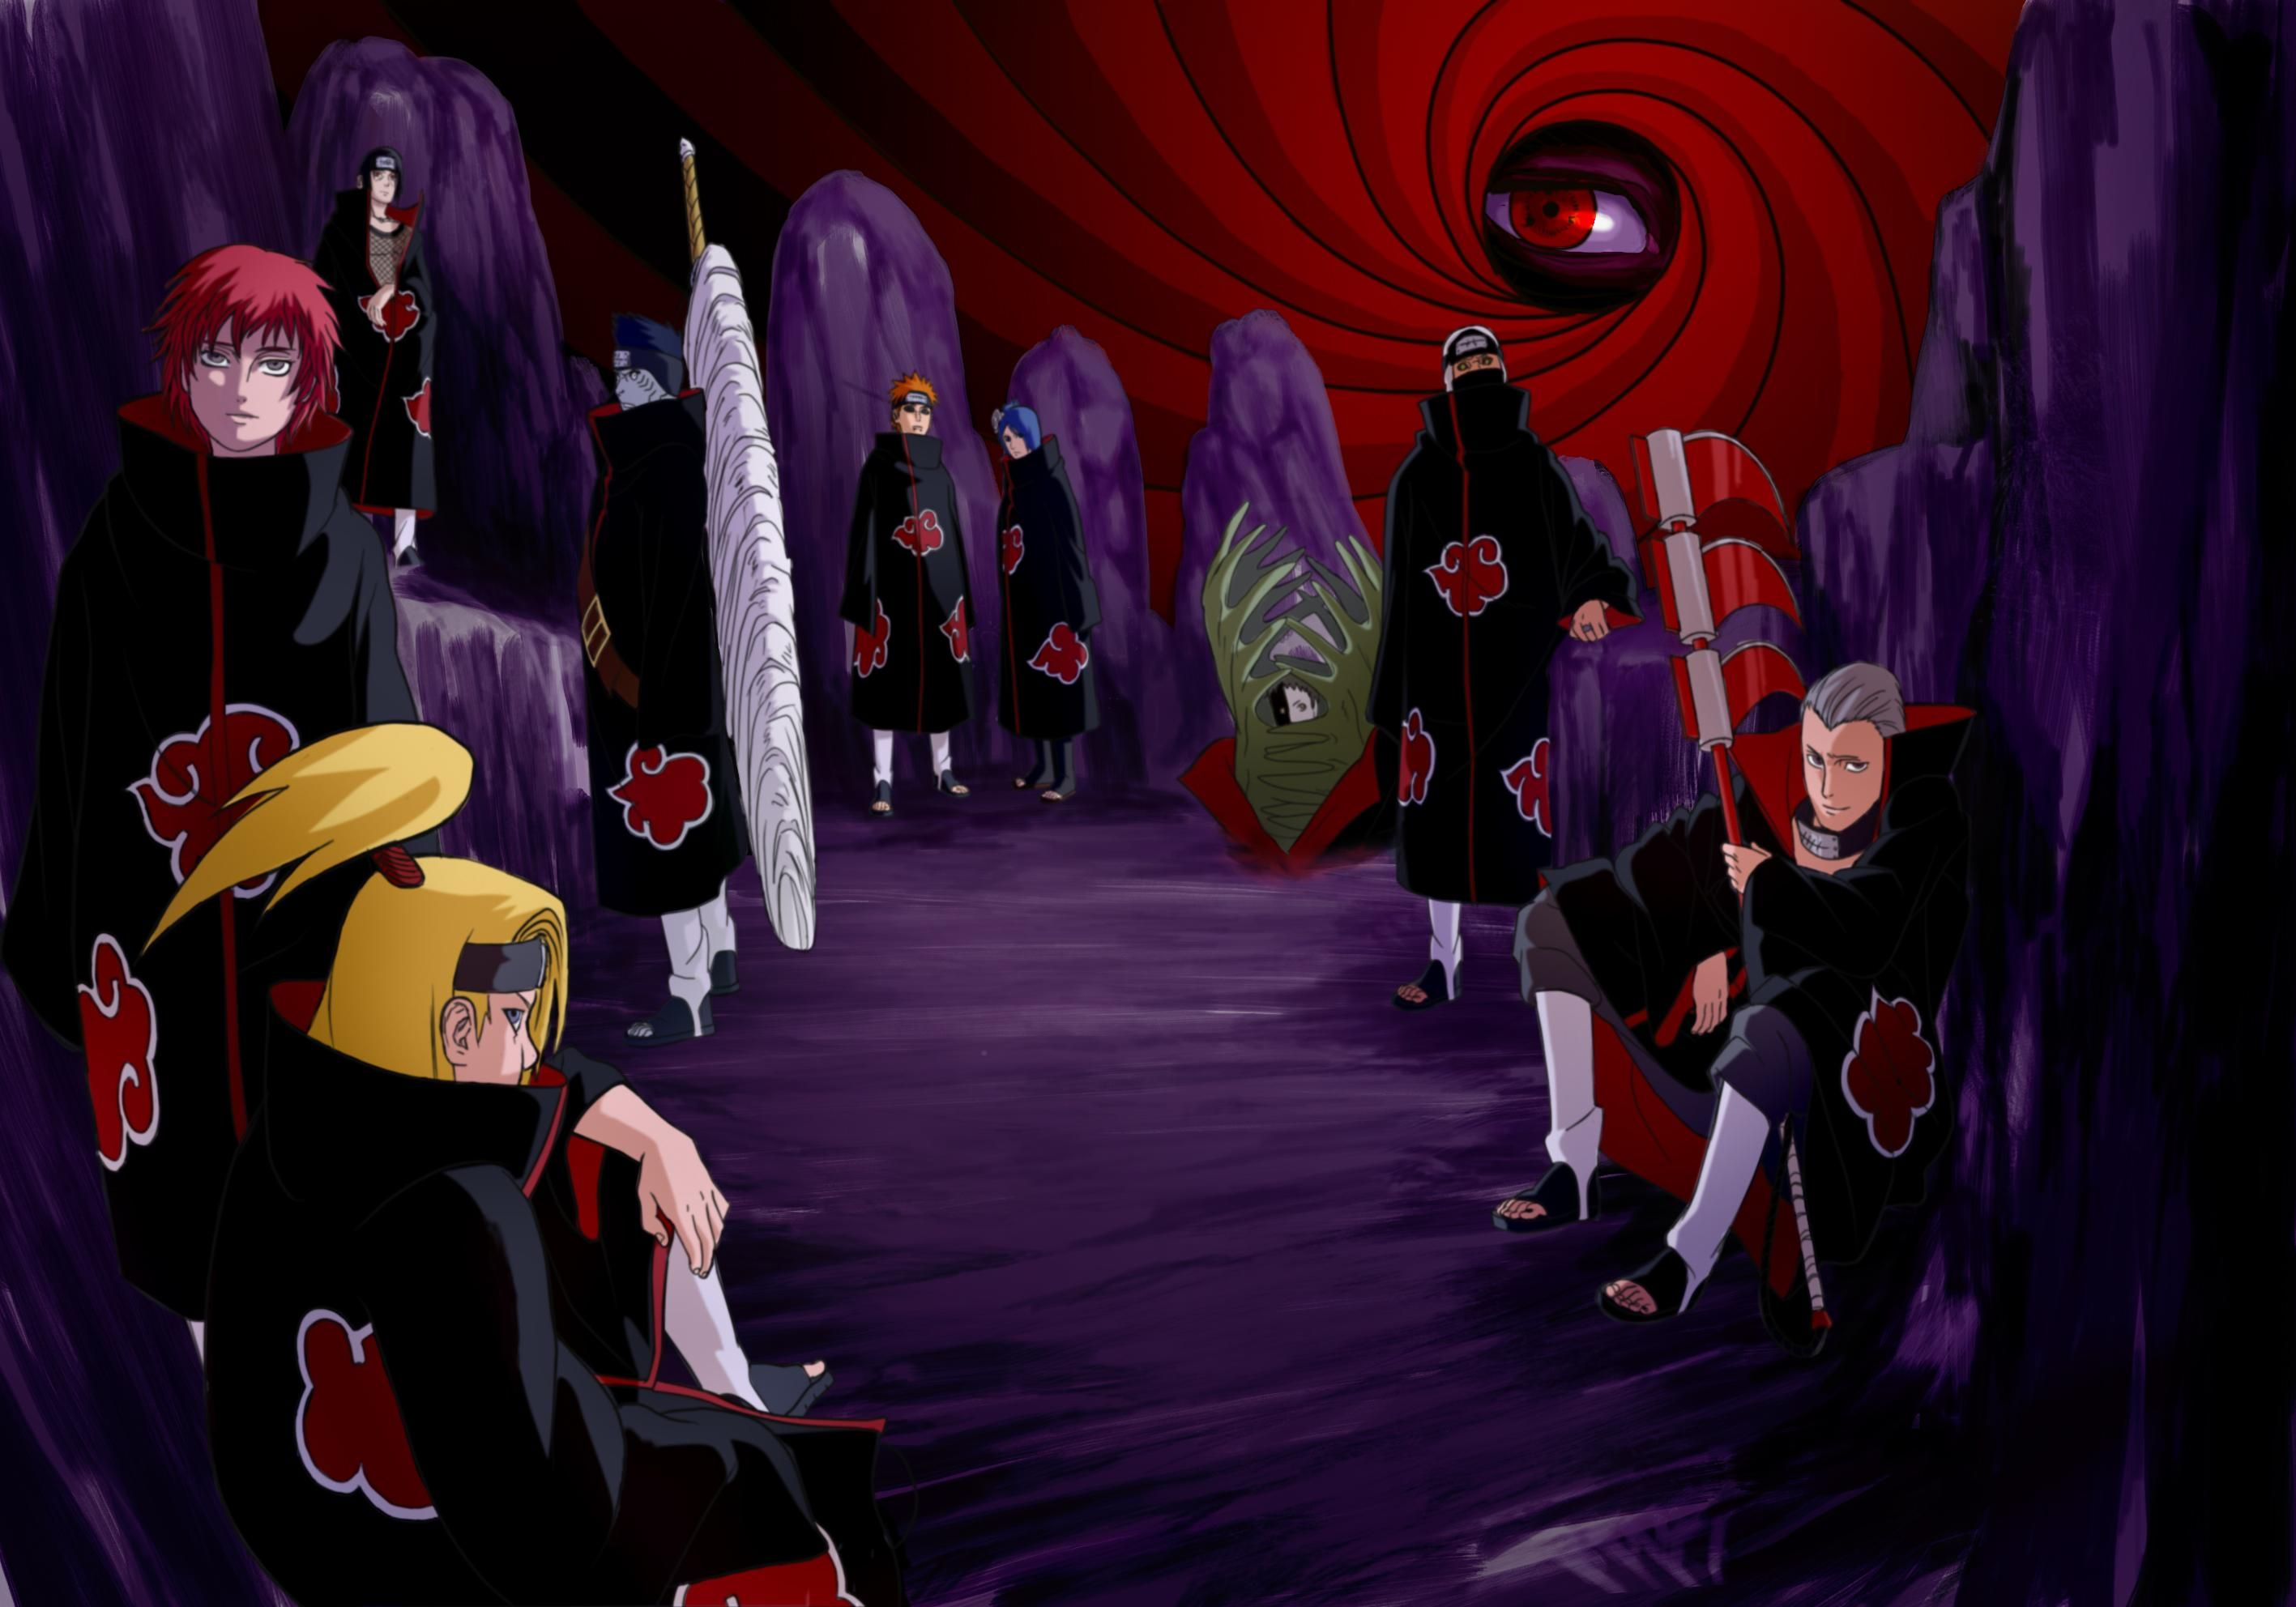 Free Download Akatsuki Backgrounds – Wallpapercraft